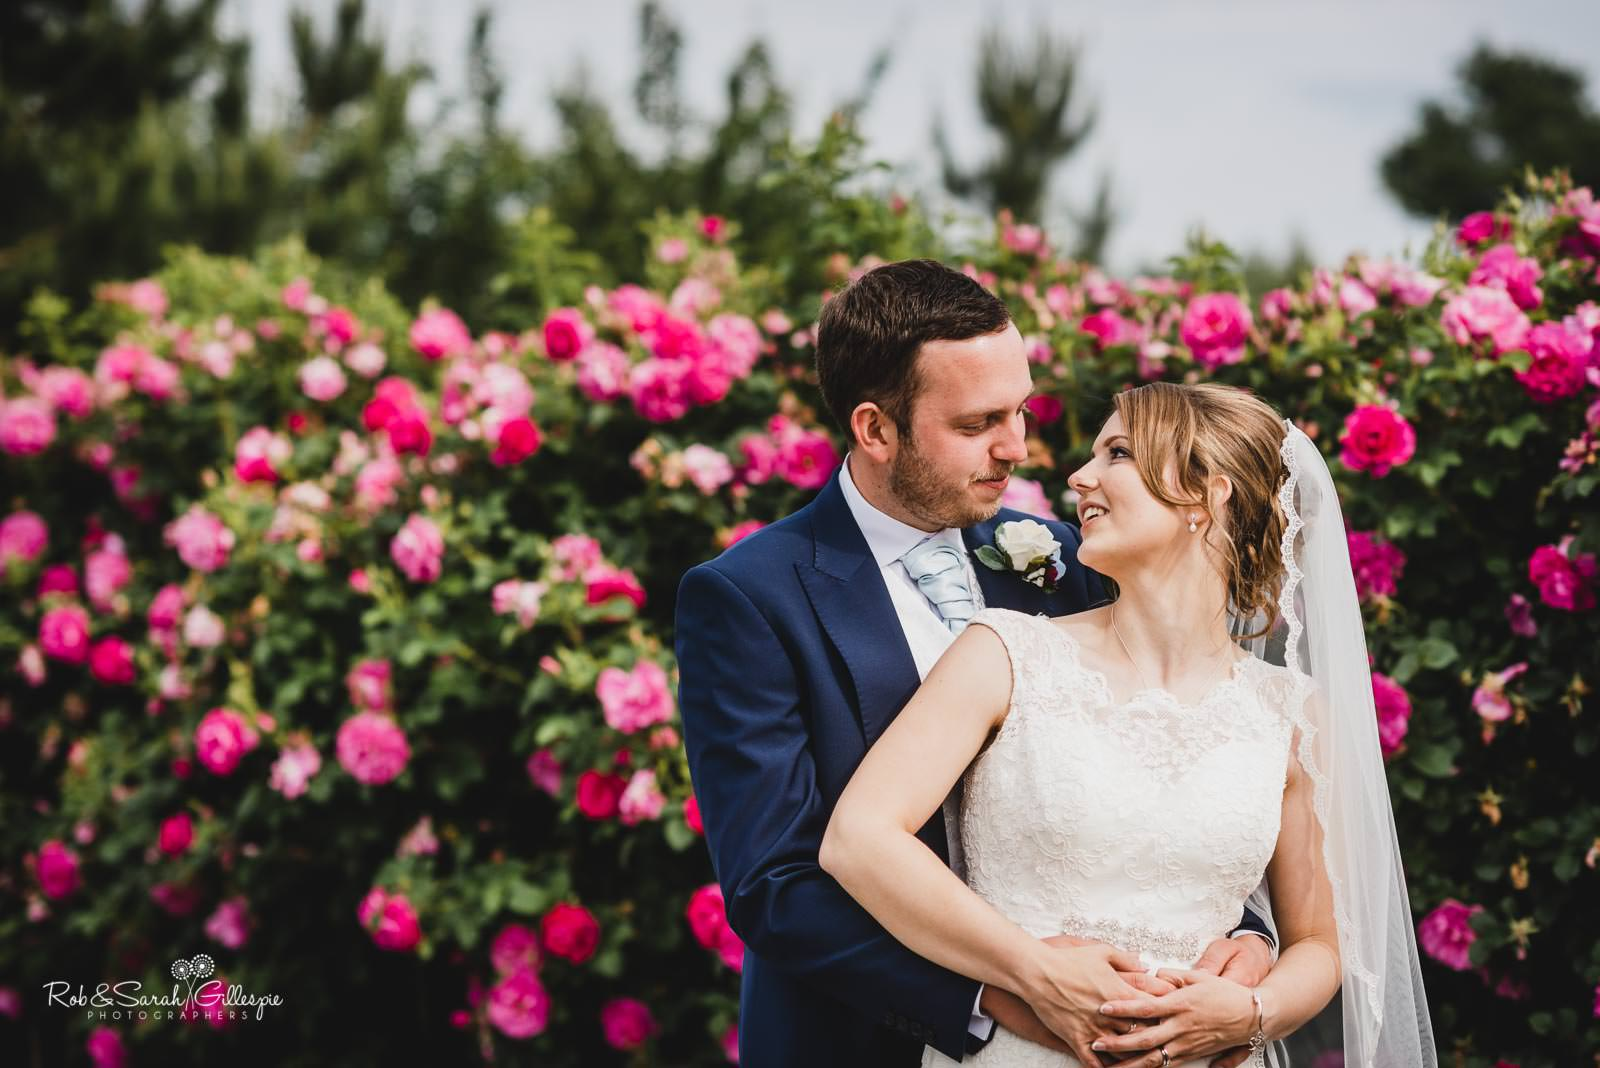 Bride and groom at Swallows Nest Barn wedding with garden flowers